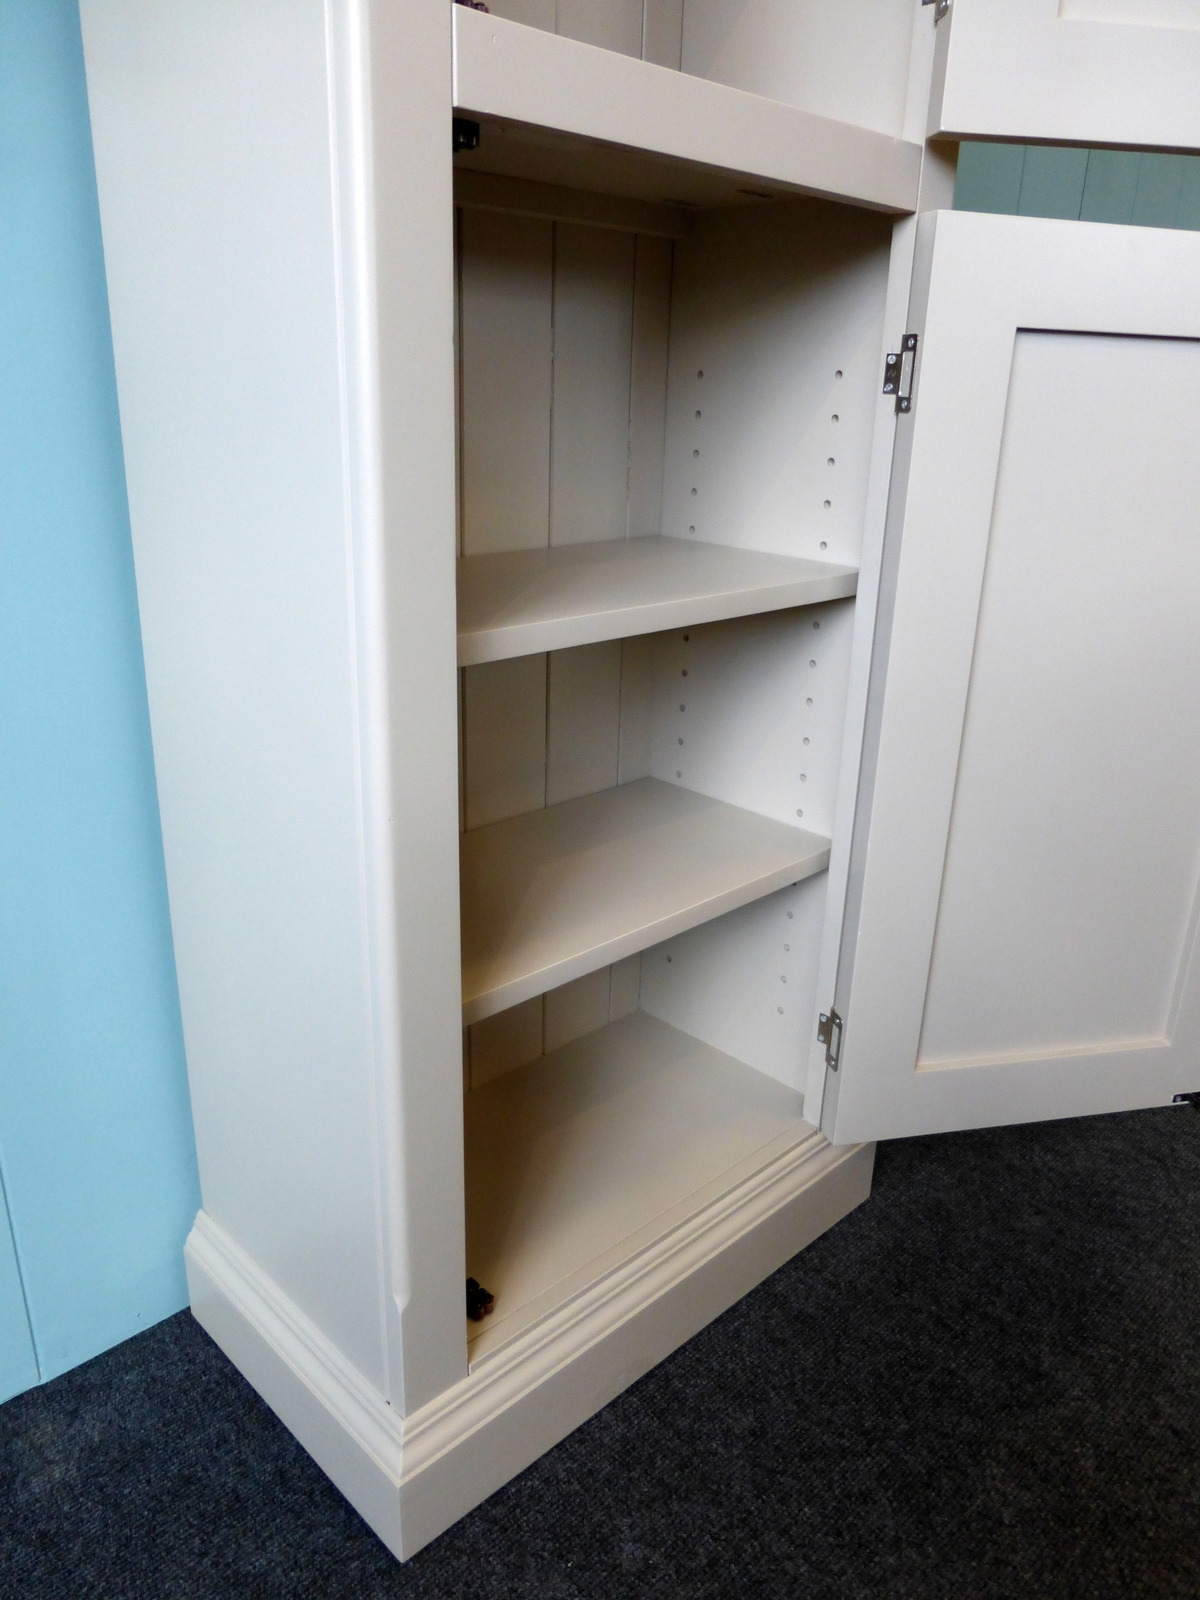 Bespoke Cupboard In Most Recent Tall Narrow Cupboard – Bespoke Porch Hallway And Bathroom (View 1 of 15)